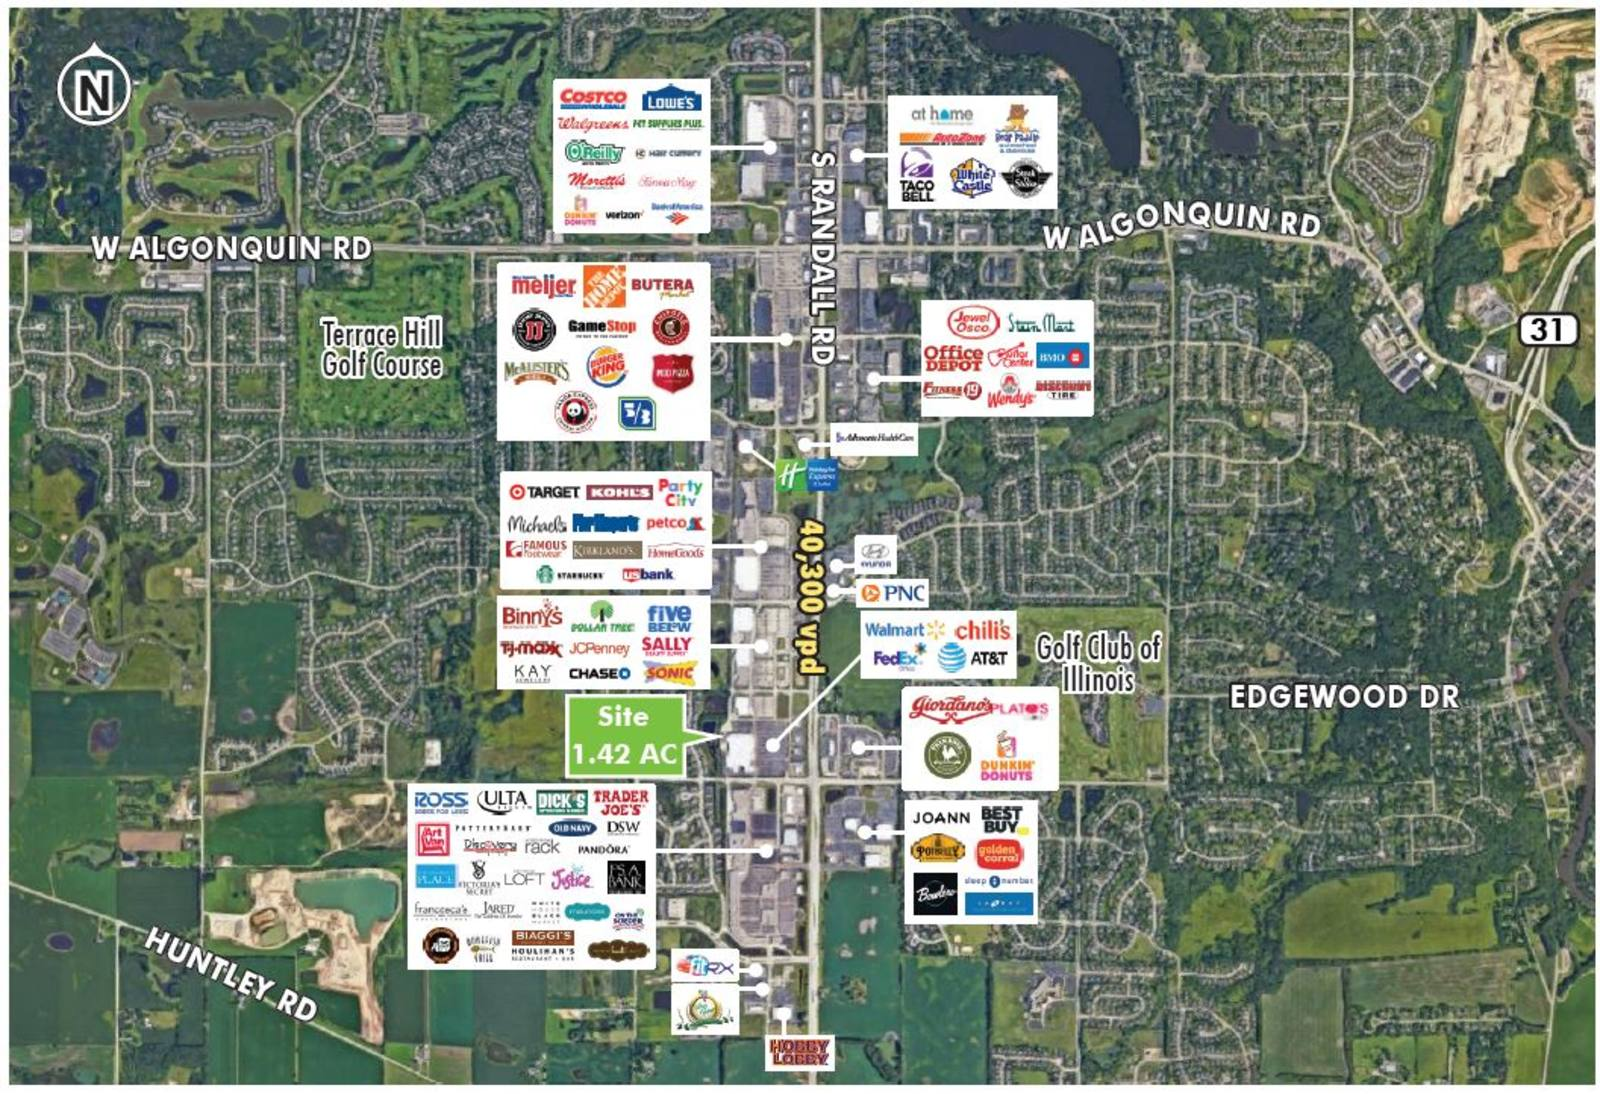 Walmart Outlot Algonquin 1410 S Randall Rd Algonquin Il Retail For Lease And For Sale At Cbre